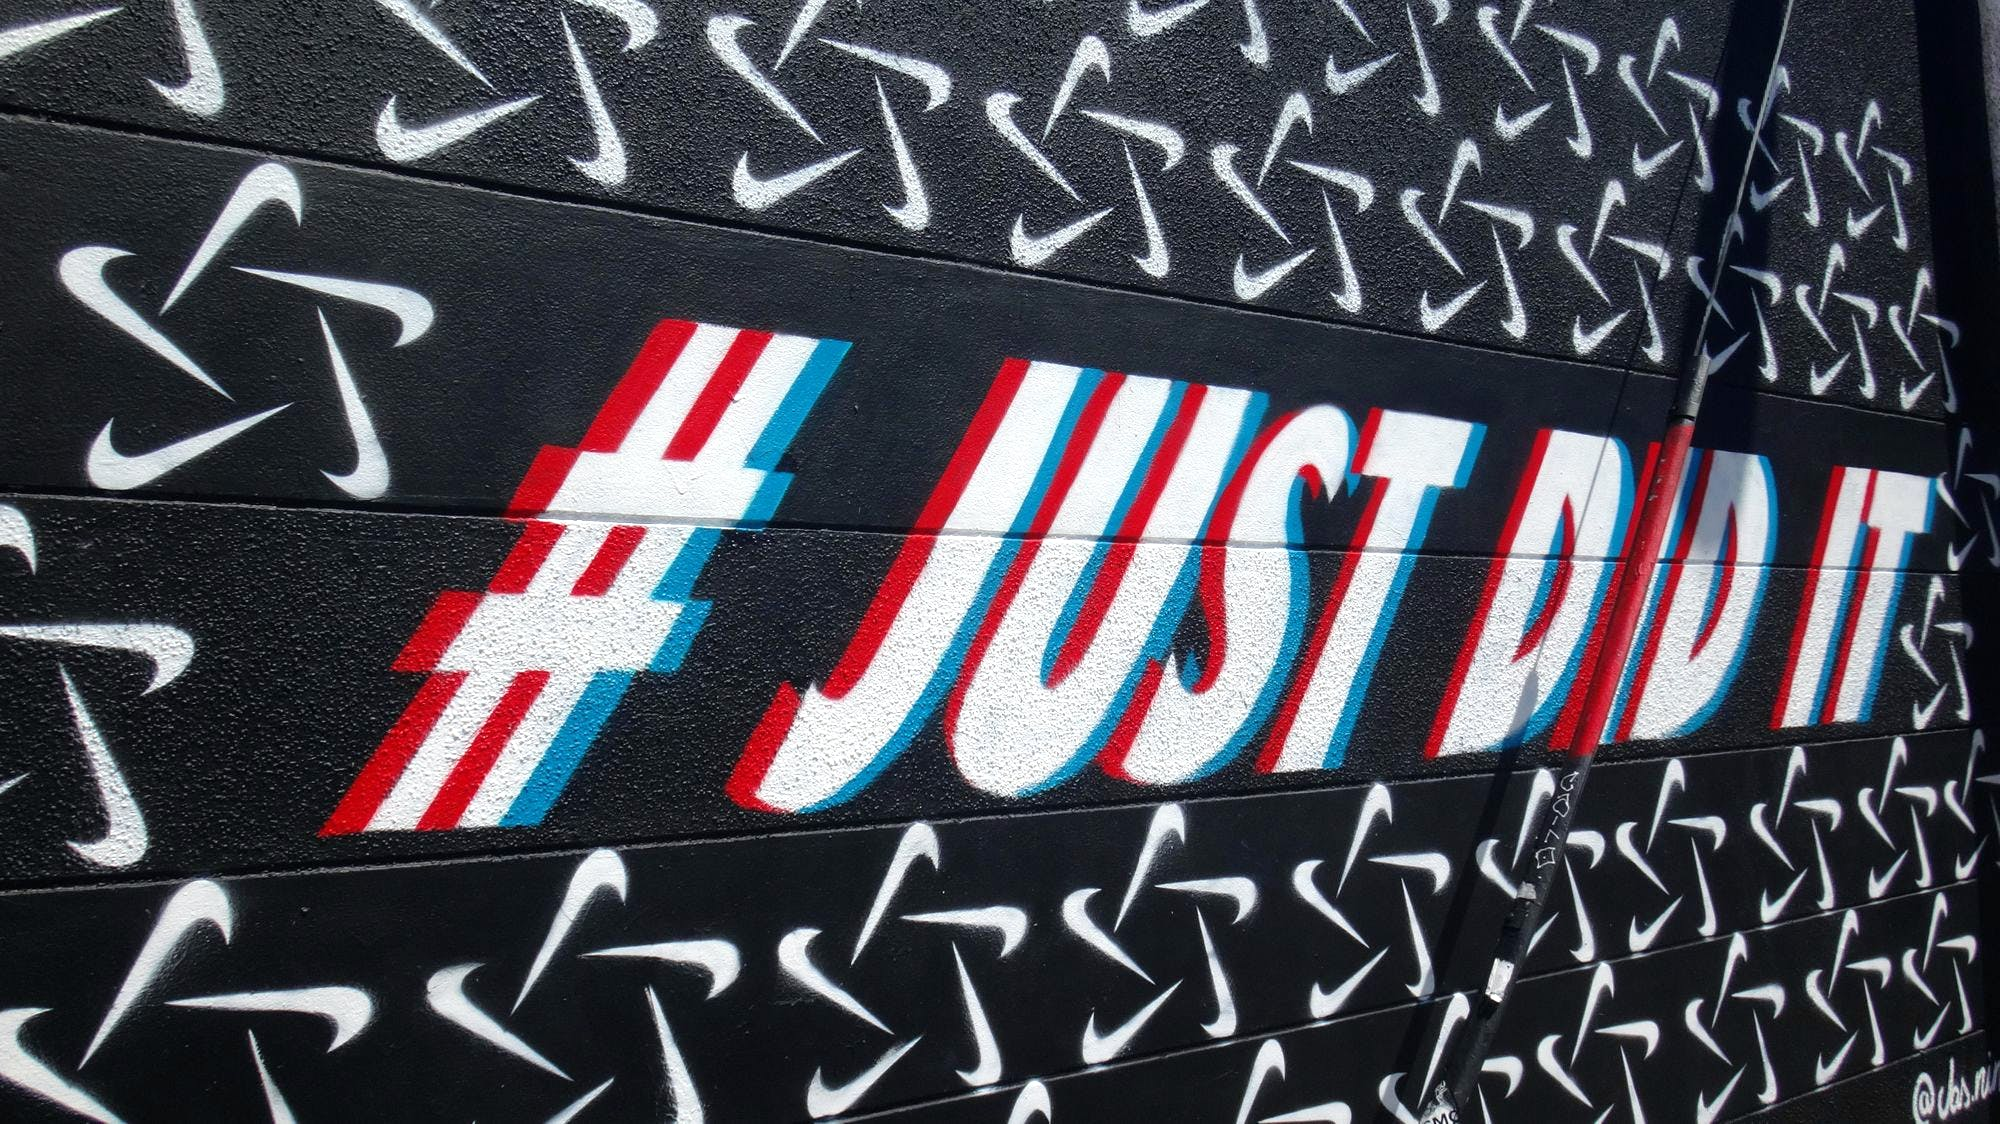 A 3-Step Process On How To Use Hashtags To Find Your Purpose